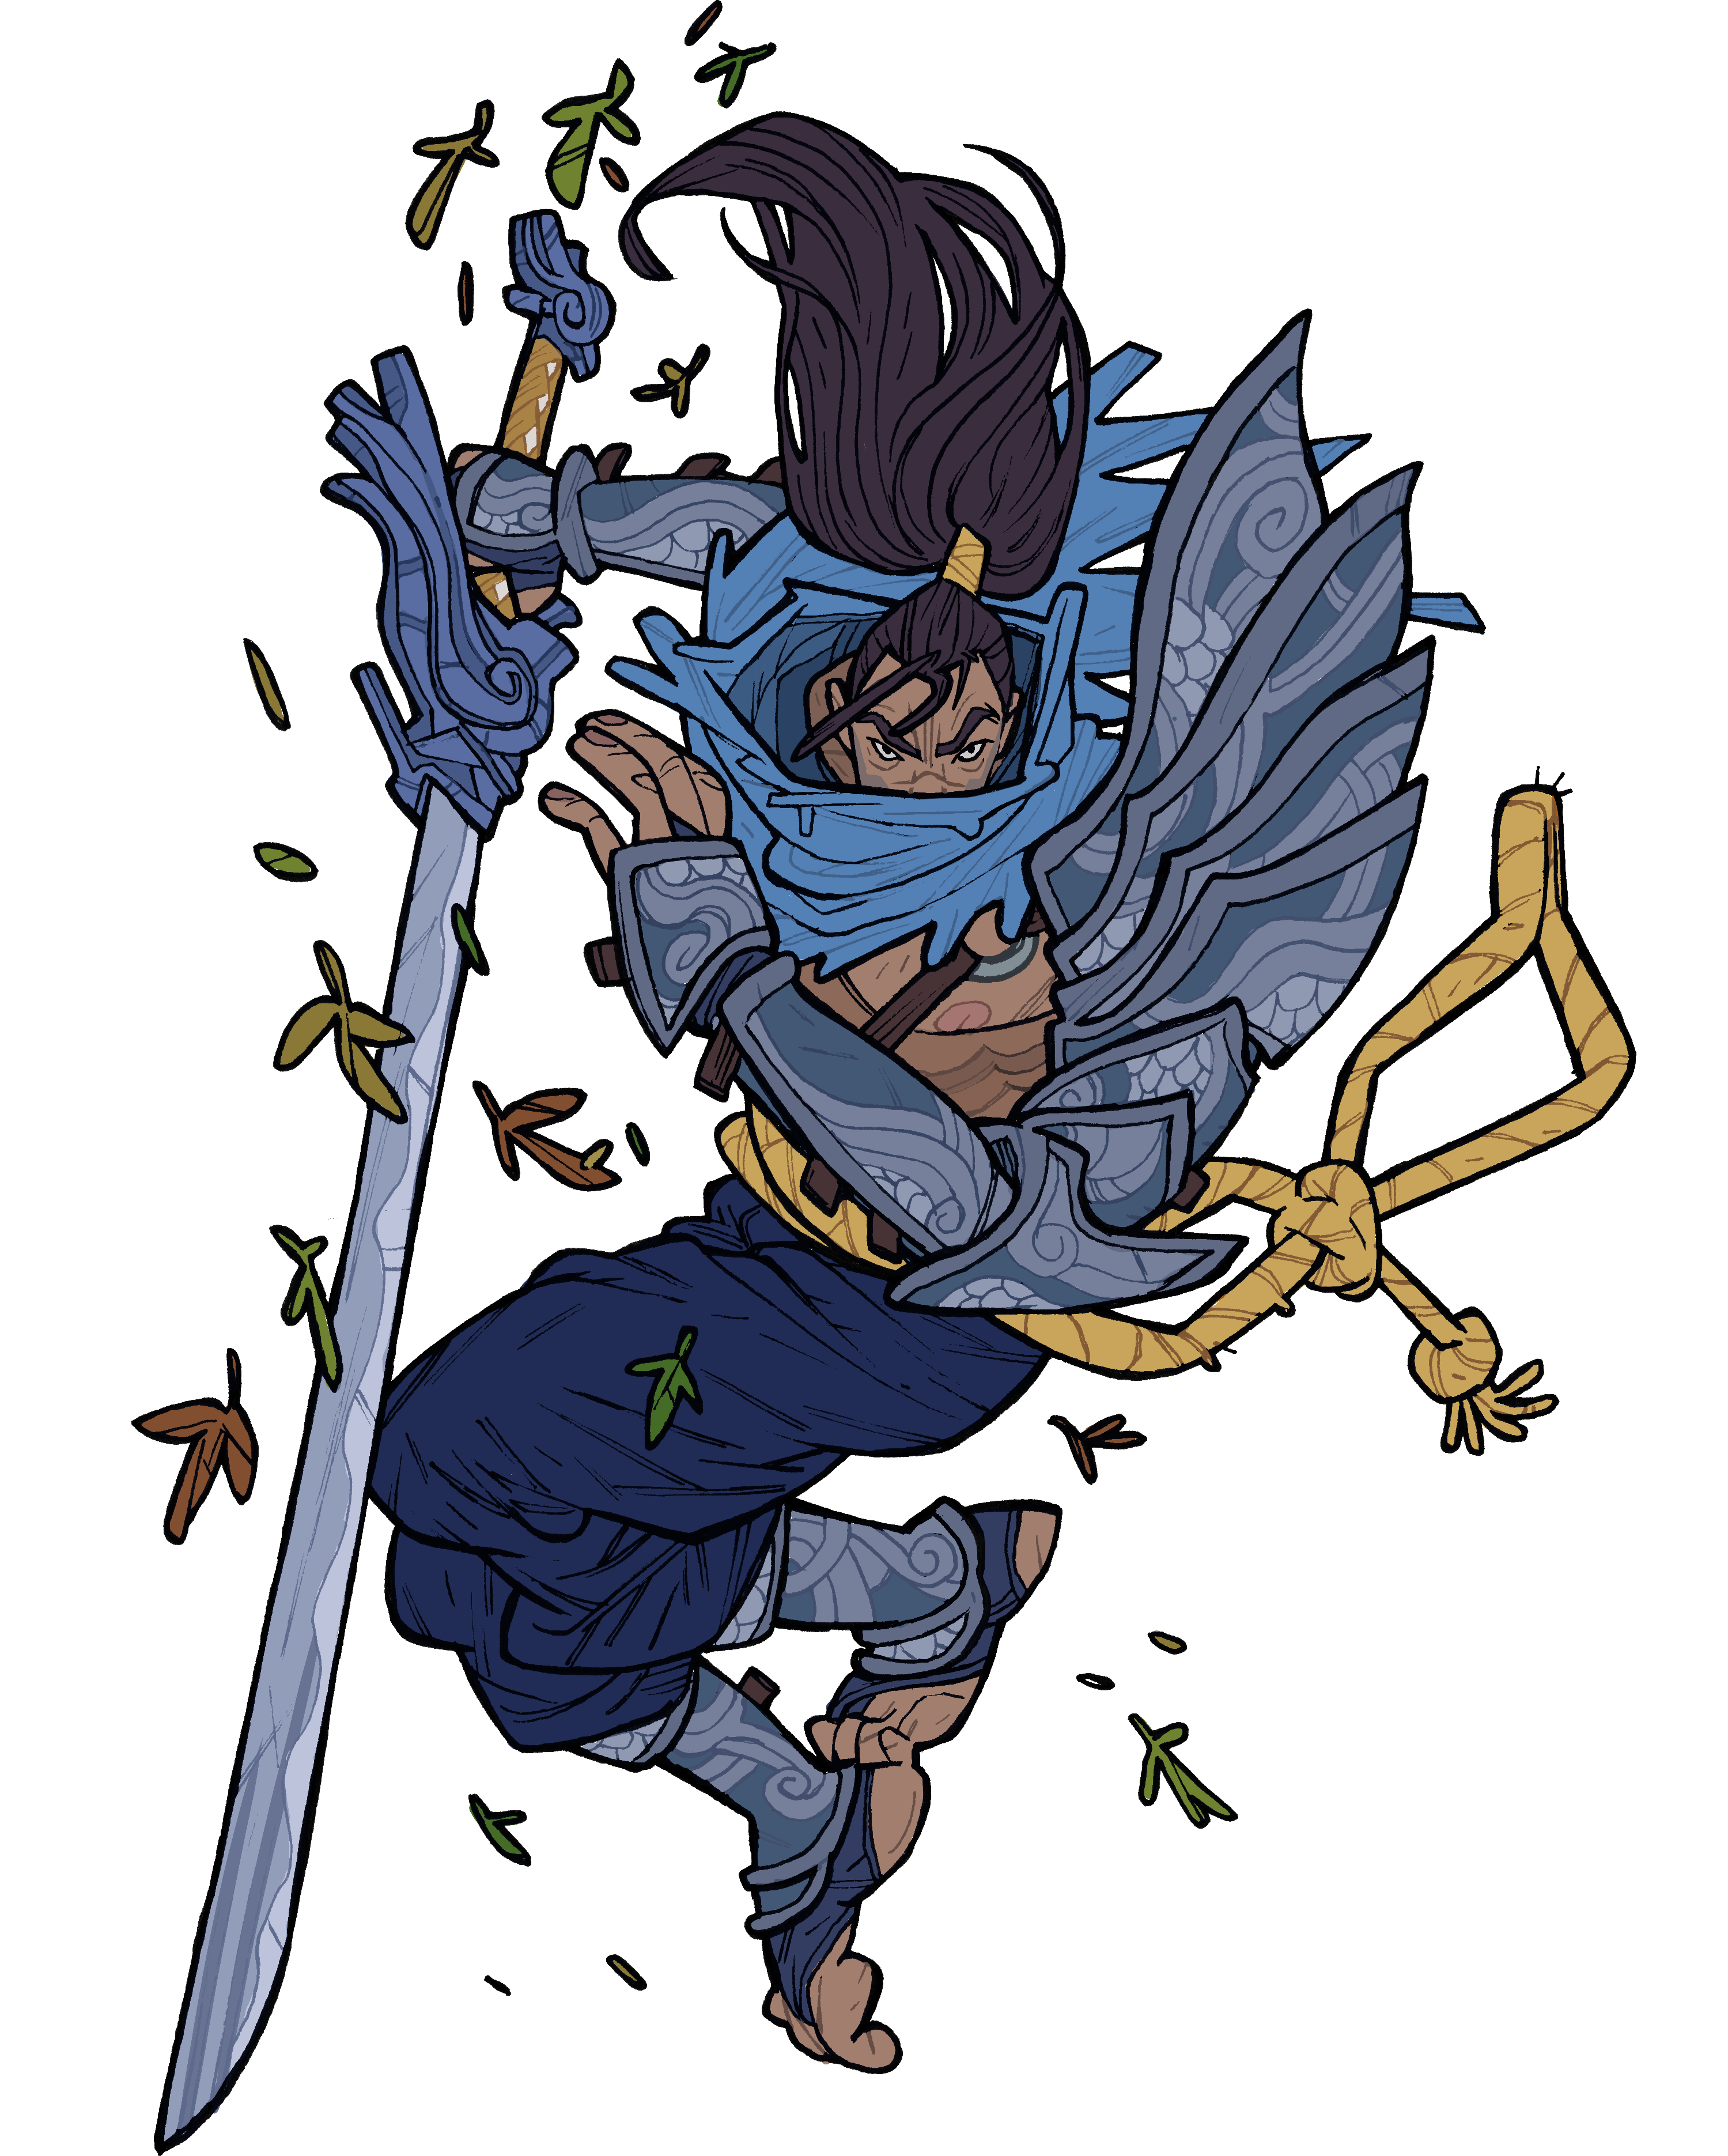 Fear clipart fear face. Yasuo sticker from the